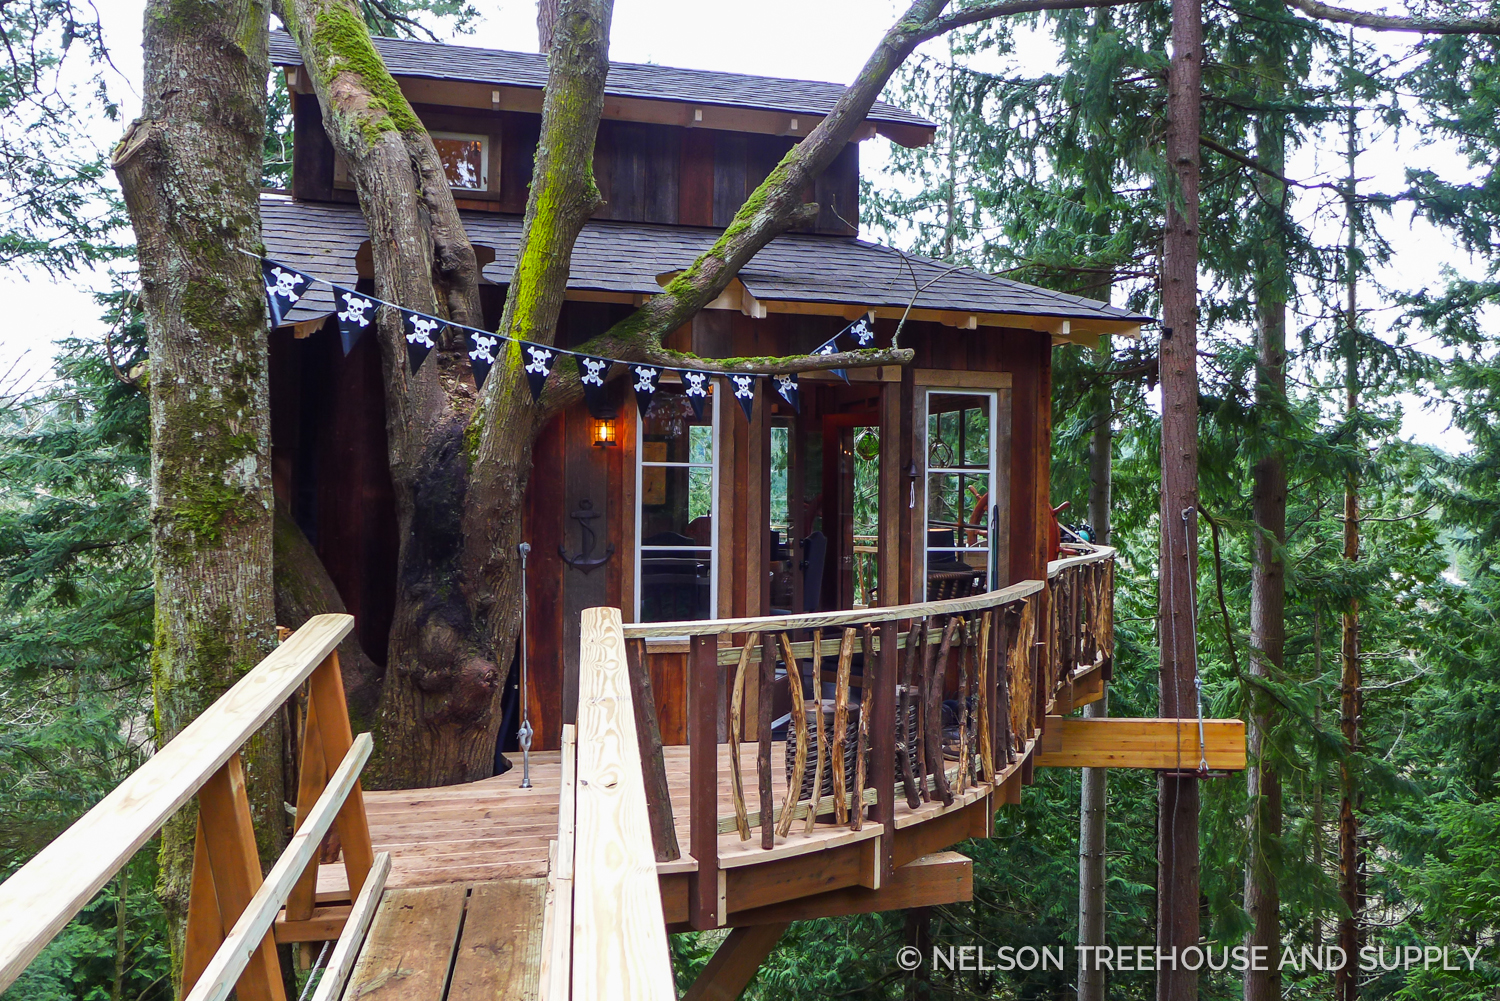 Nelson Treehouse Pirate Hideout